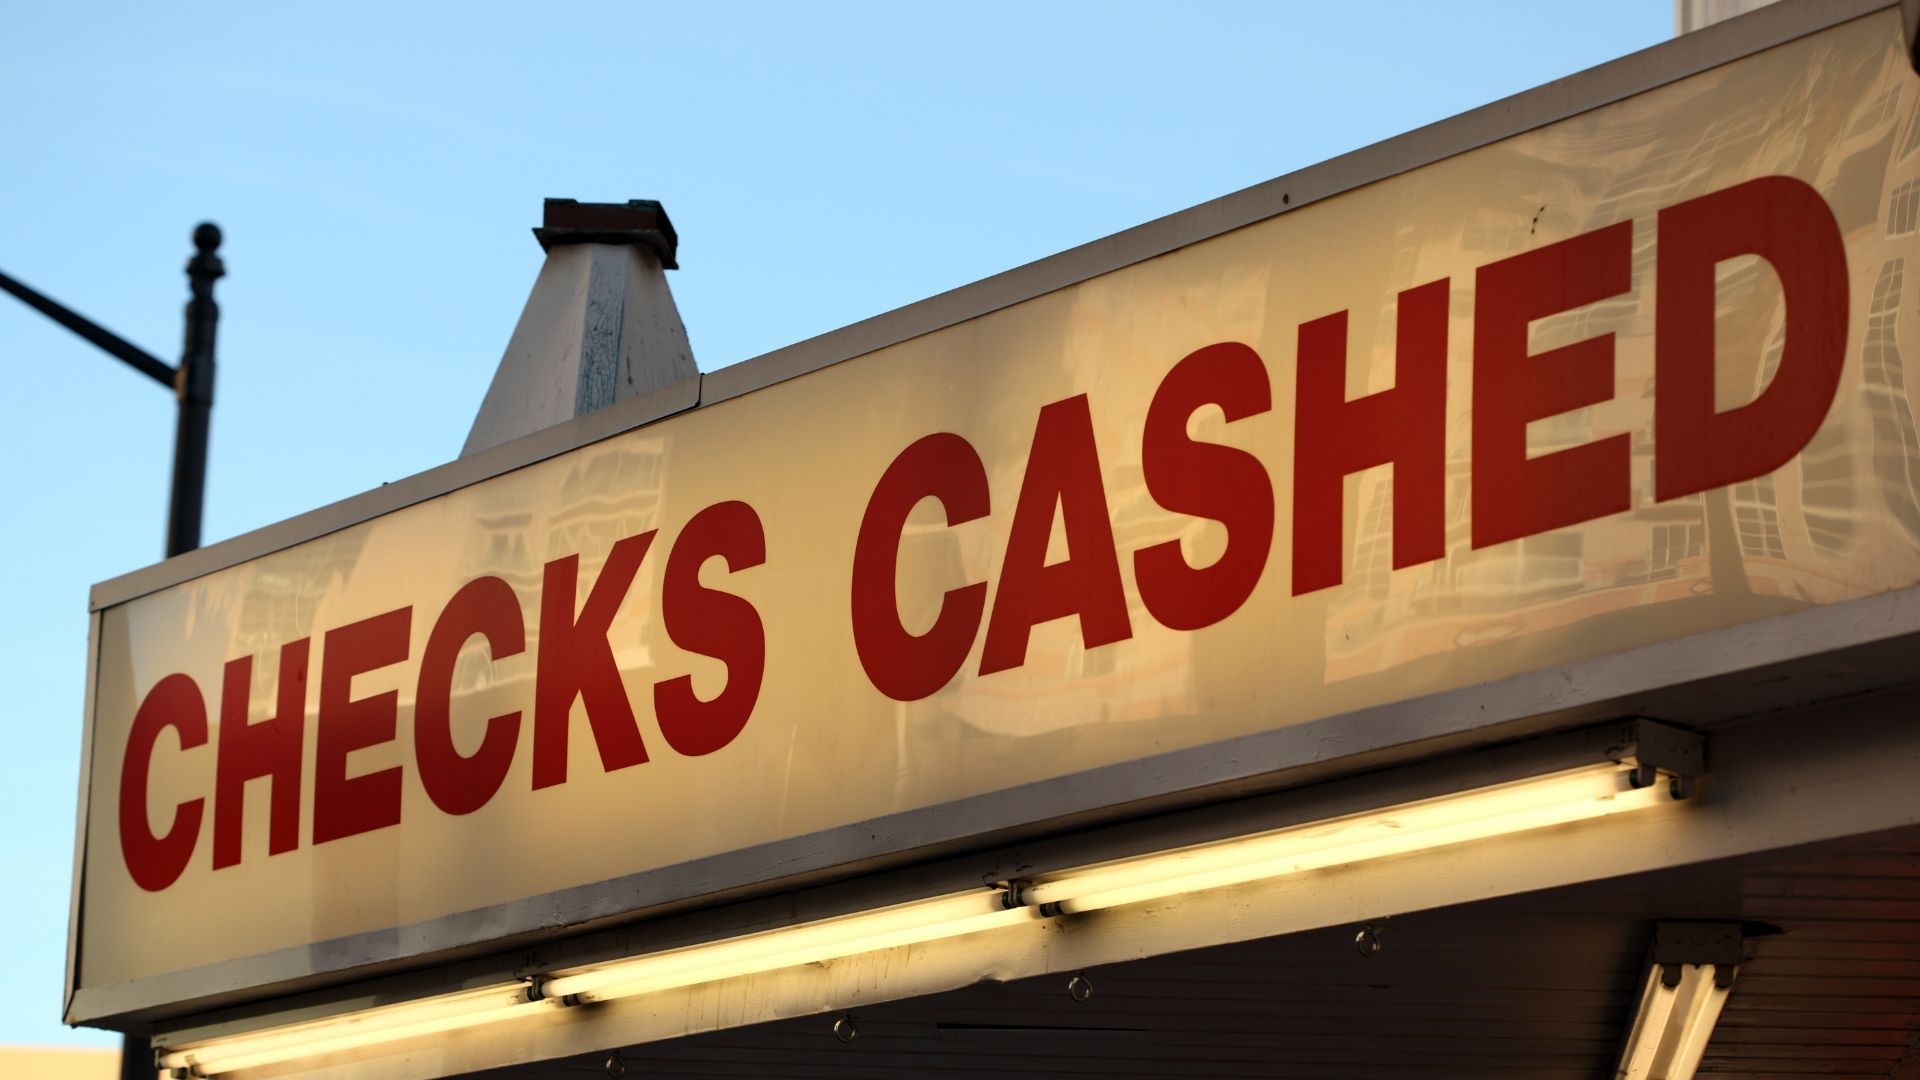 Check Cashing Business for Sale | Industry Deep Dive